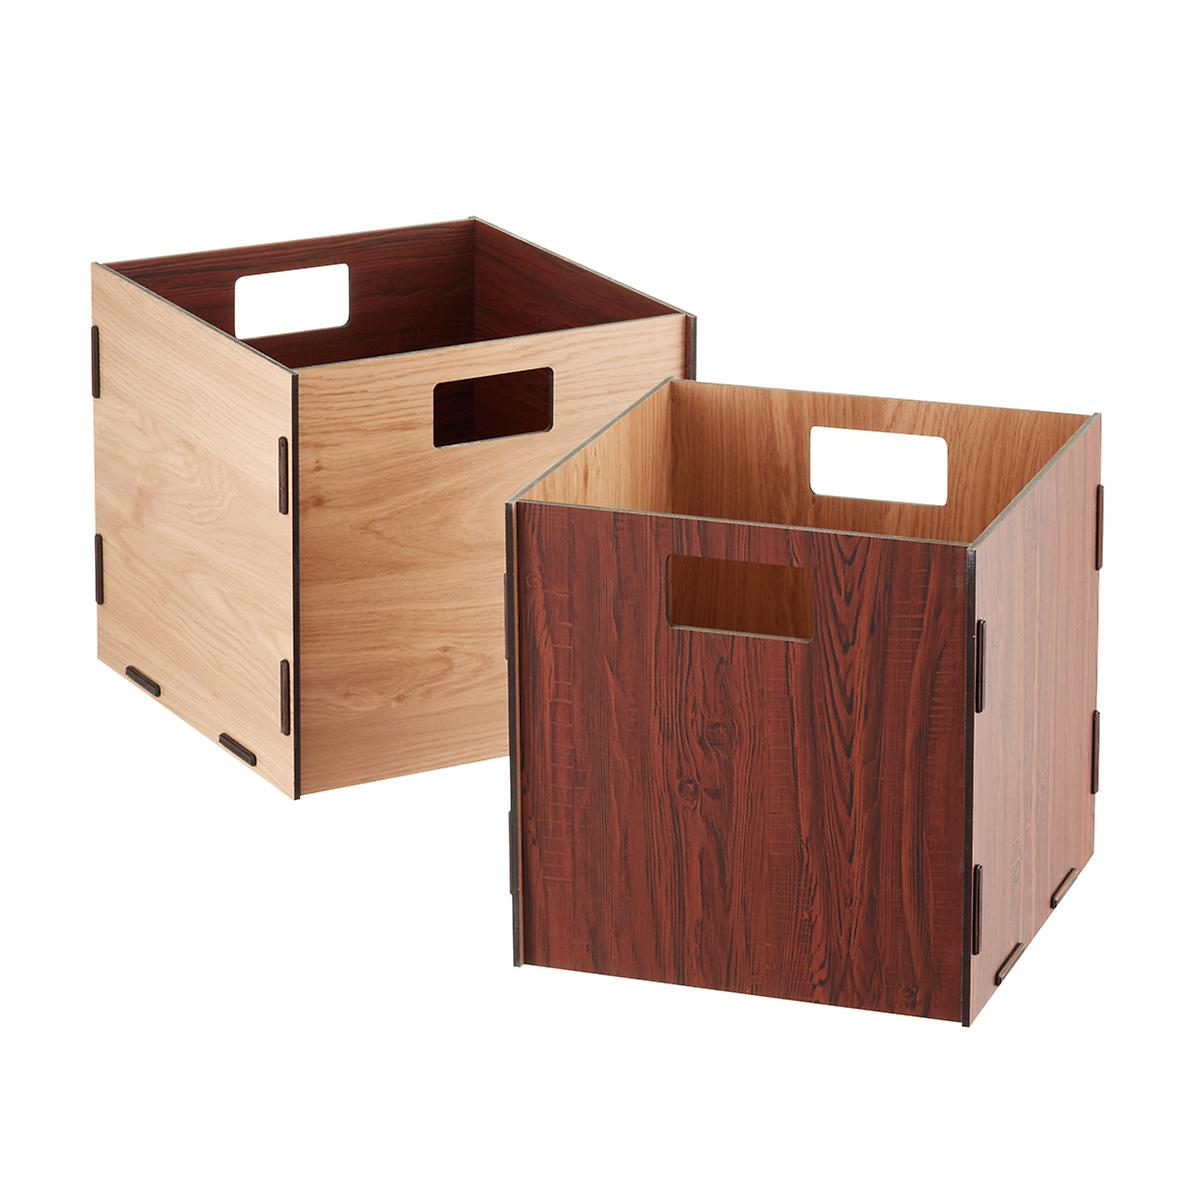 Natural Cherry Reversible Wooden Storage Cube With Handles